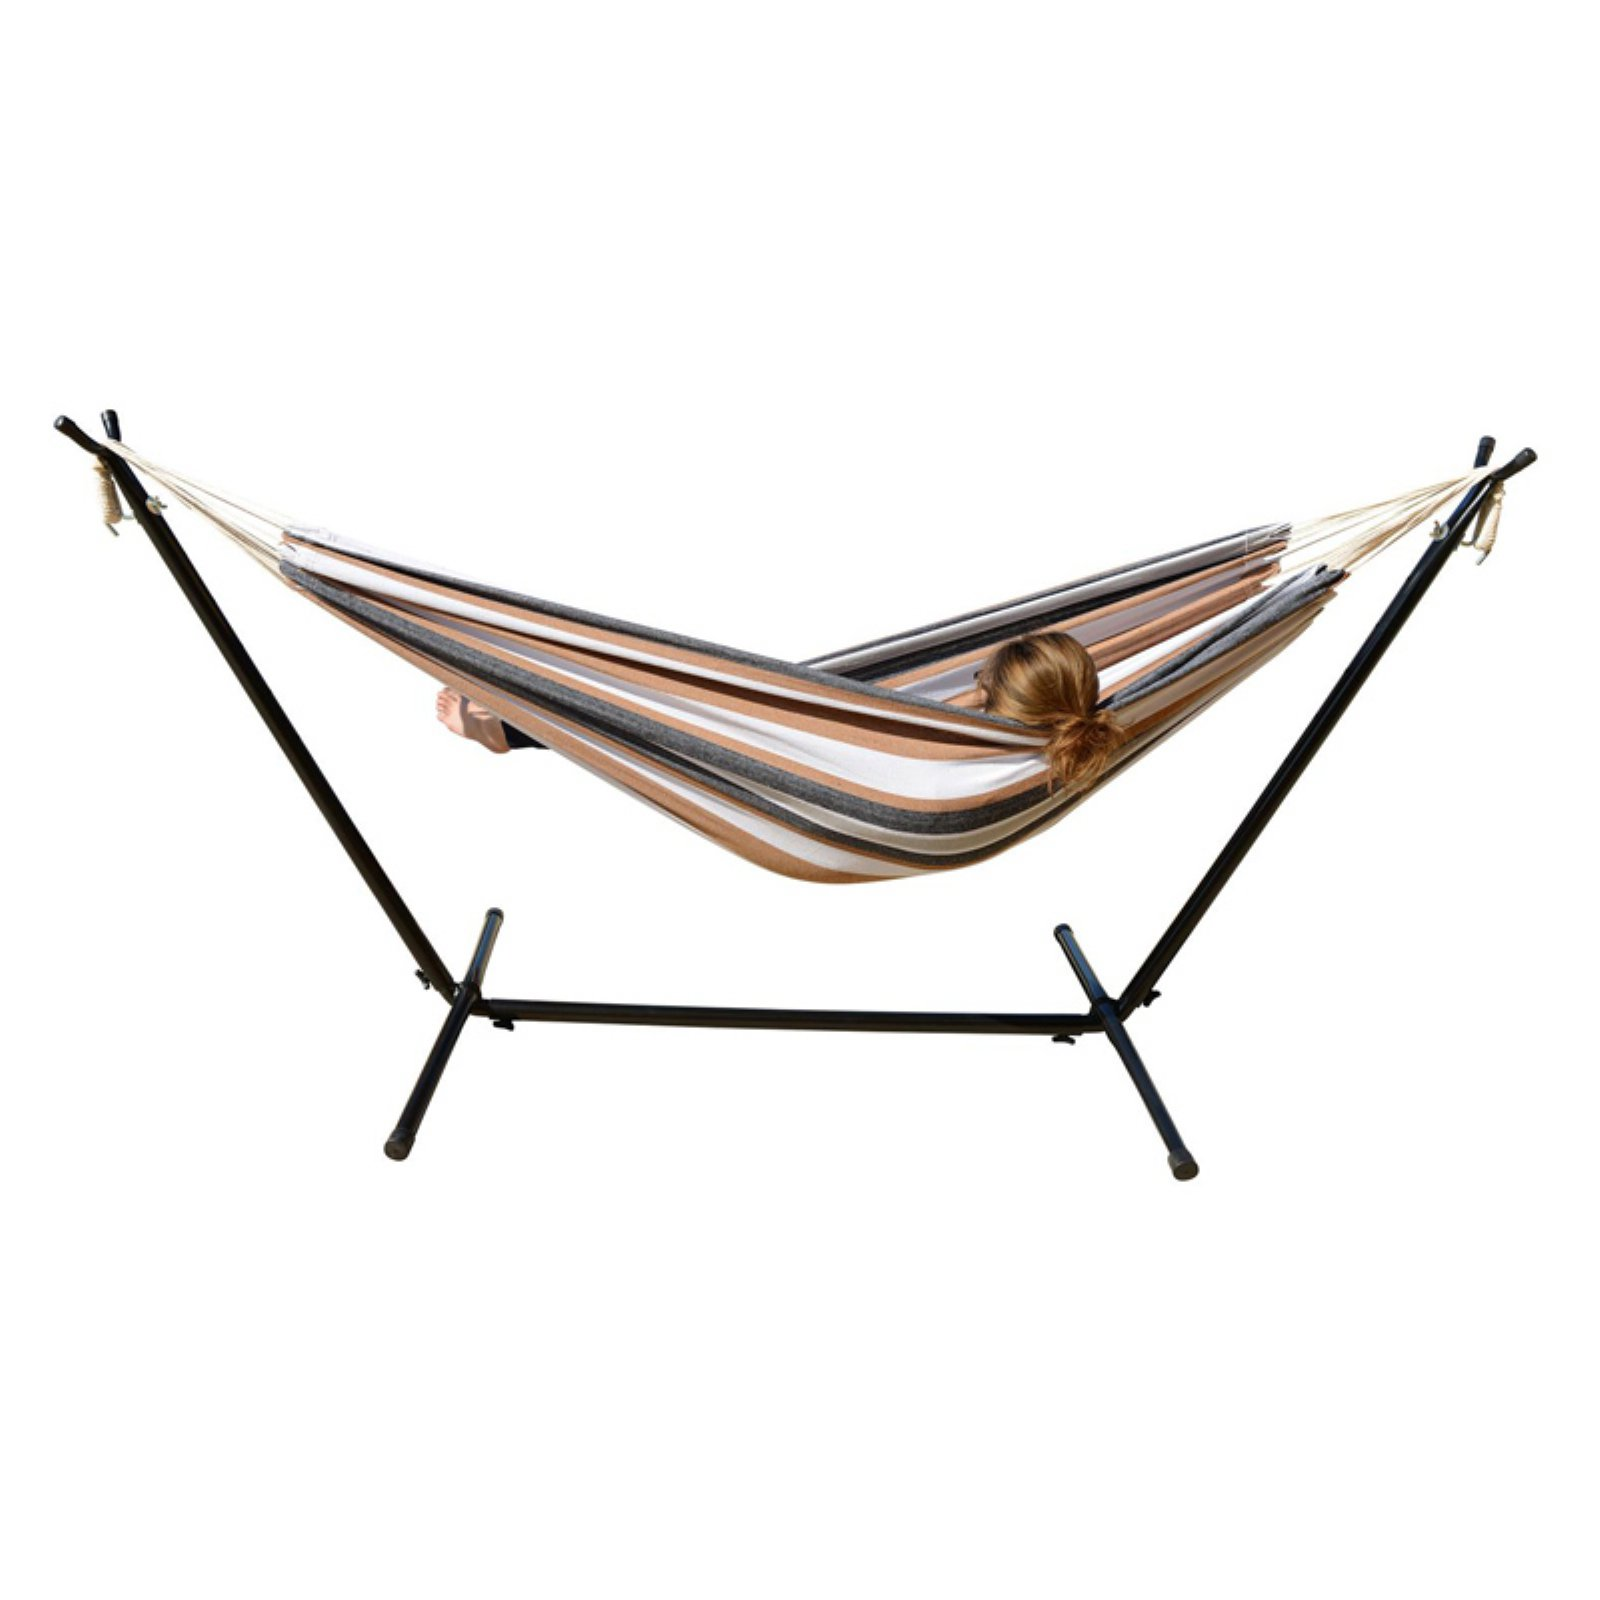 Mano Patio 9.5 ft. Double Hammock with Stand